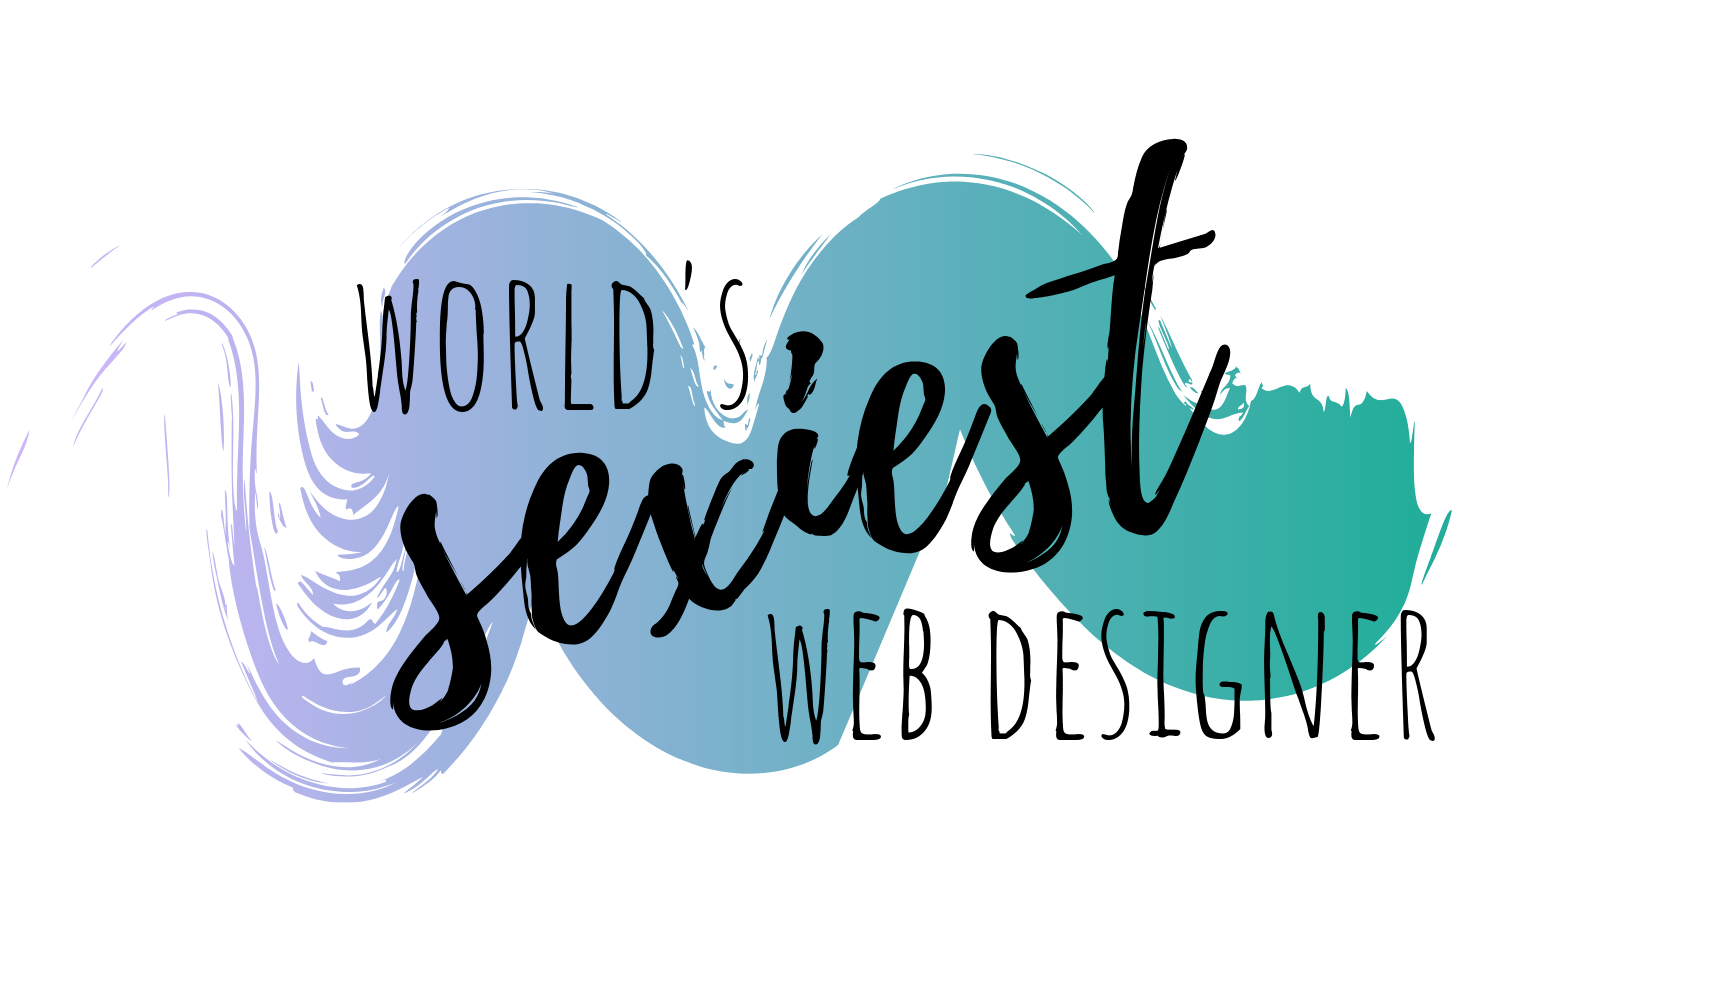 Design World's sexiest web designer